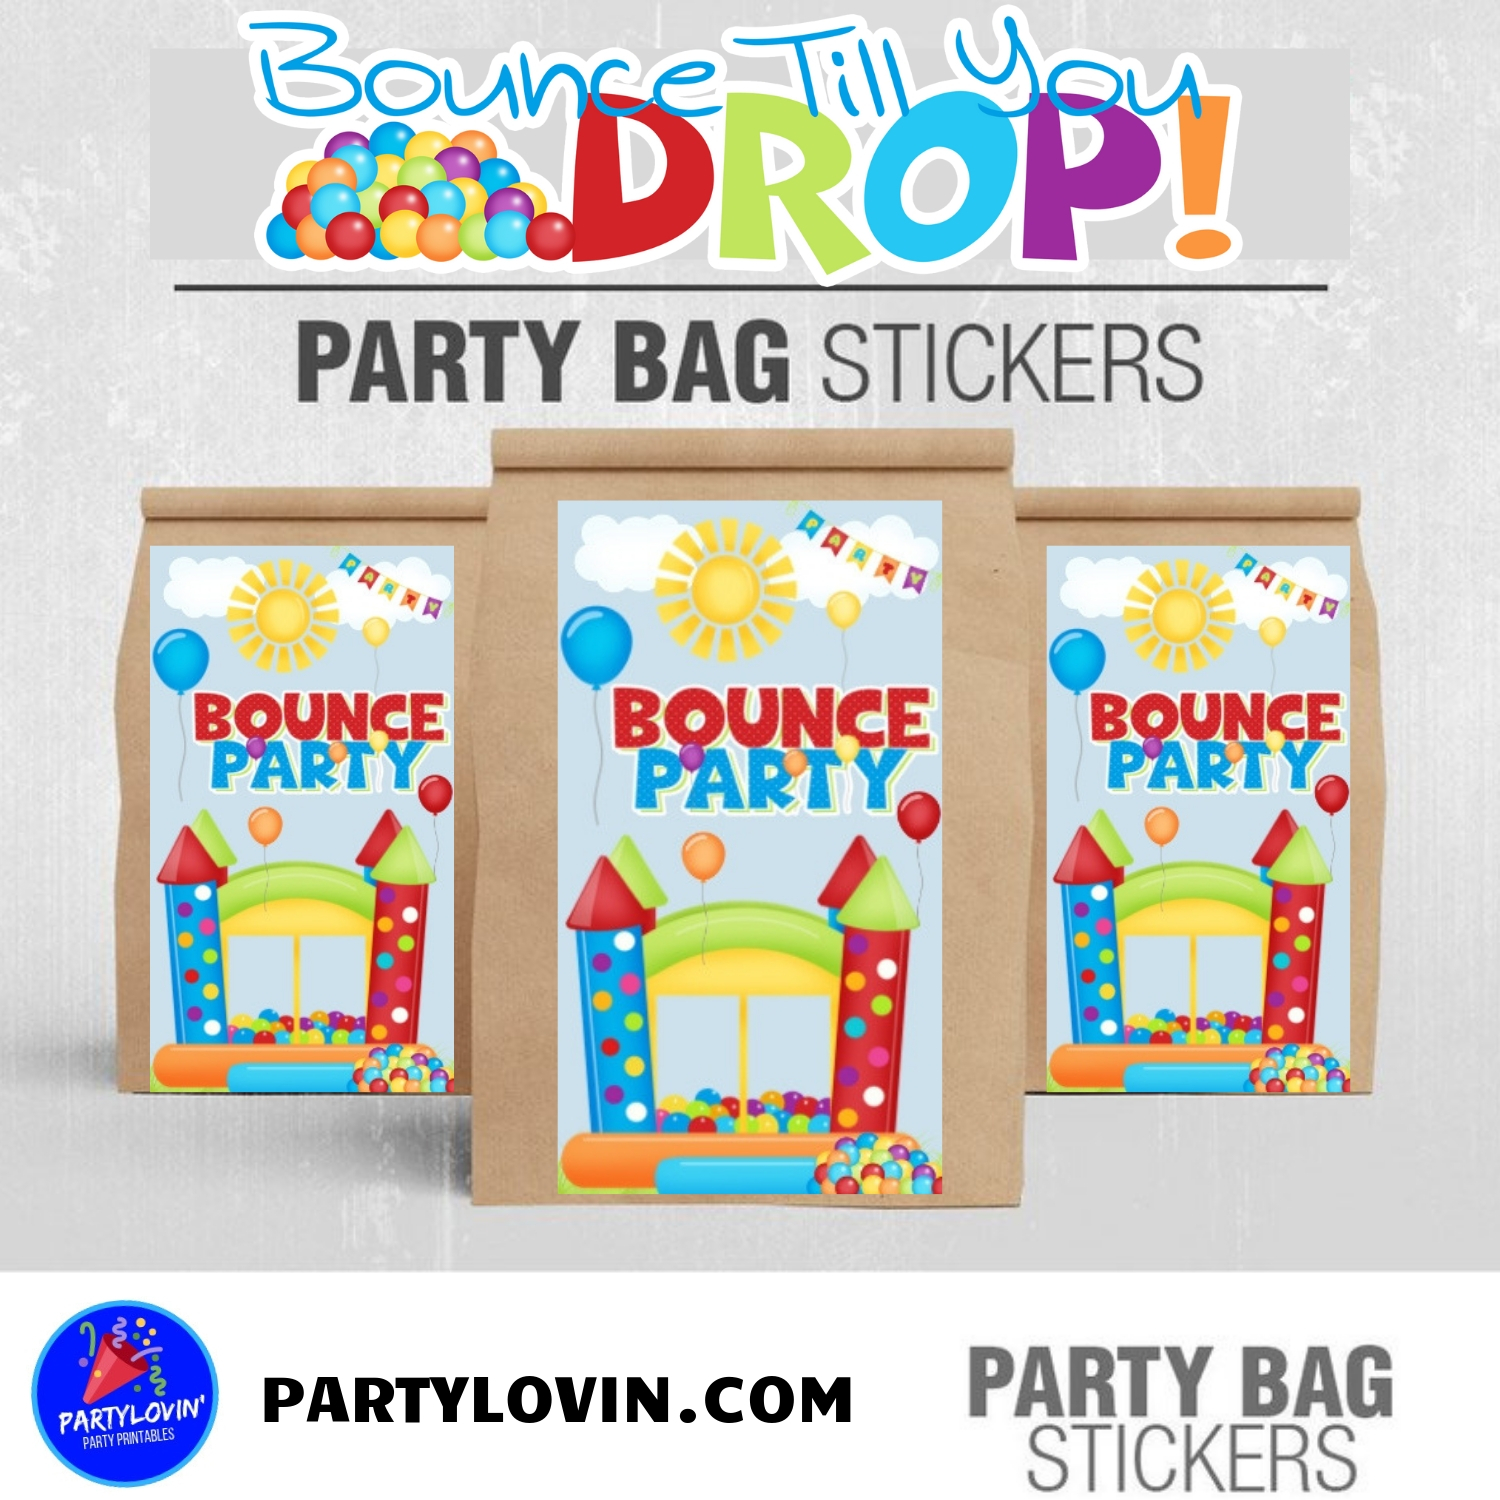 Bounce Till you Drop Birthday Party Package Printable